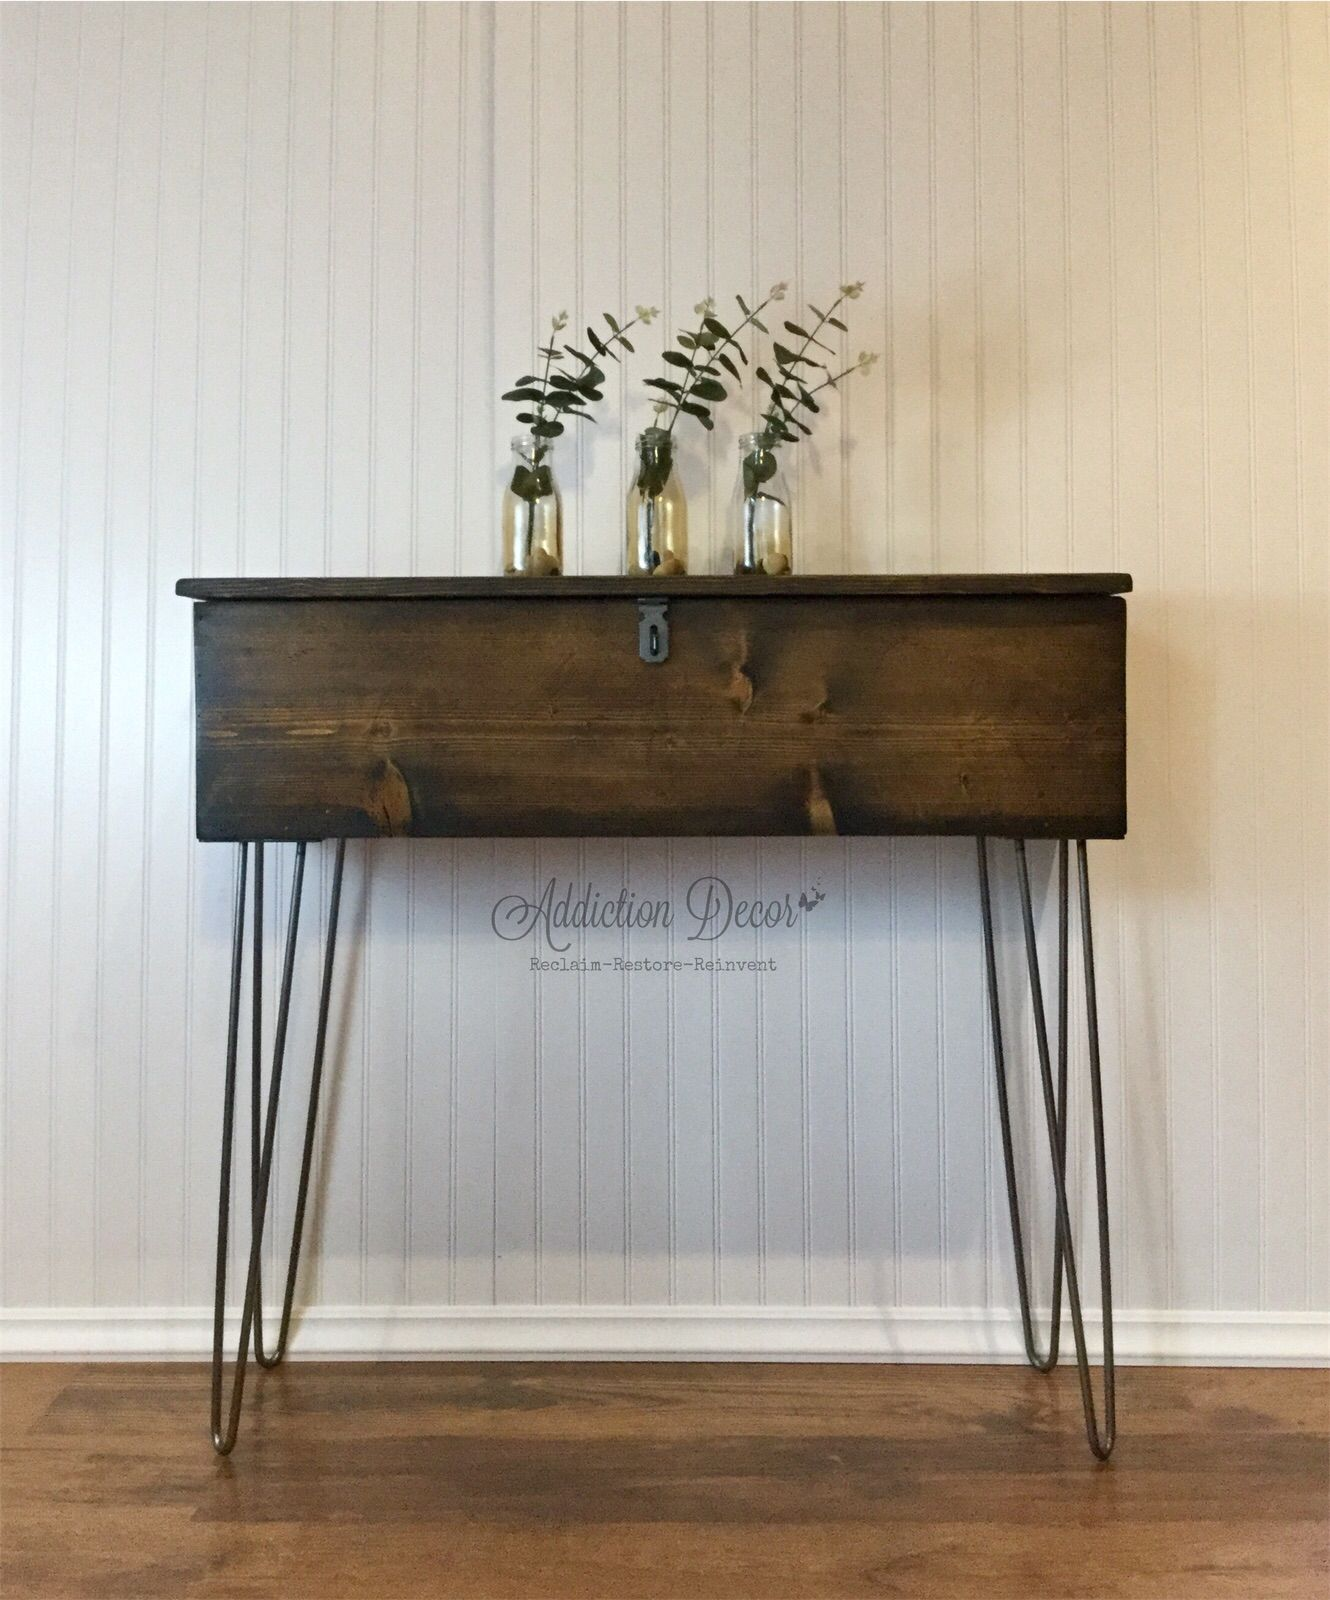 I Simply Cannot Pass Up A Vintage Wooden Tool Box A New Finish And Some Raw Steel Hairpin Legs L Repurposed Wooden Box Wooden Tool Boxes Wood Tool Box